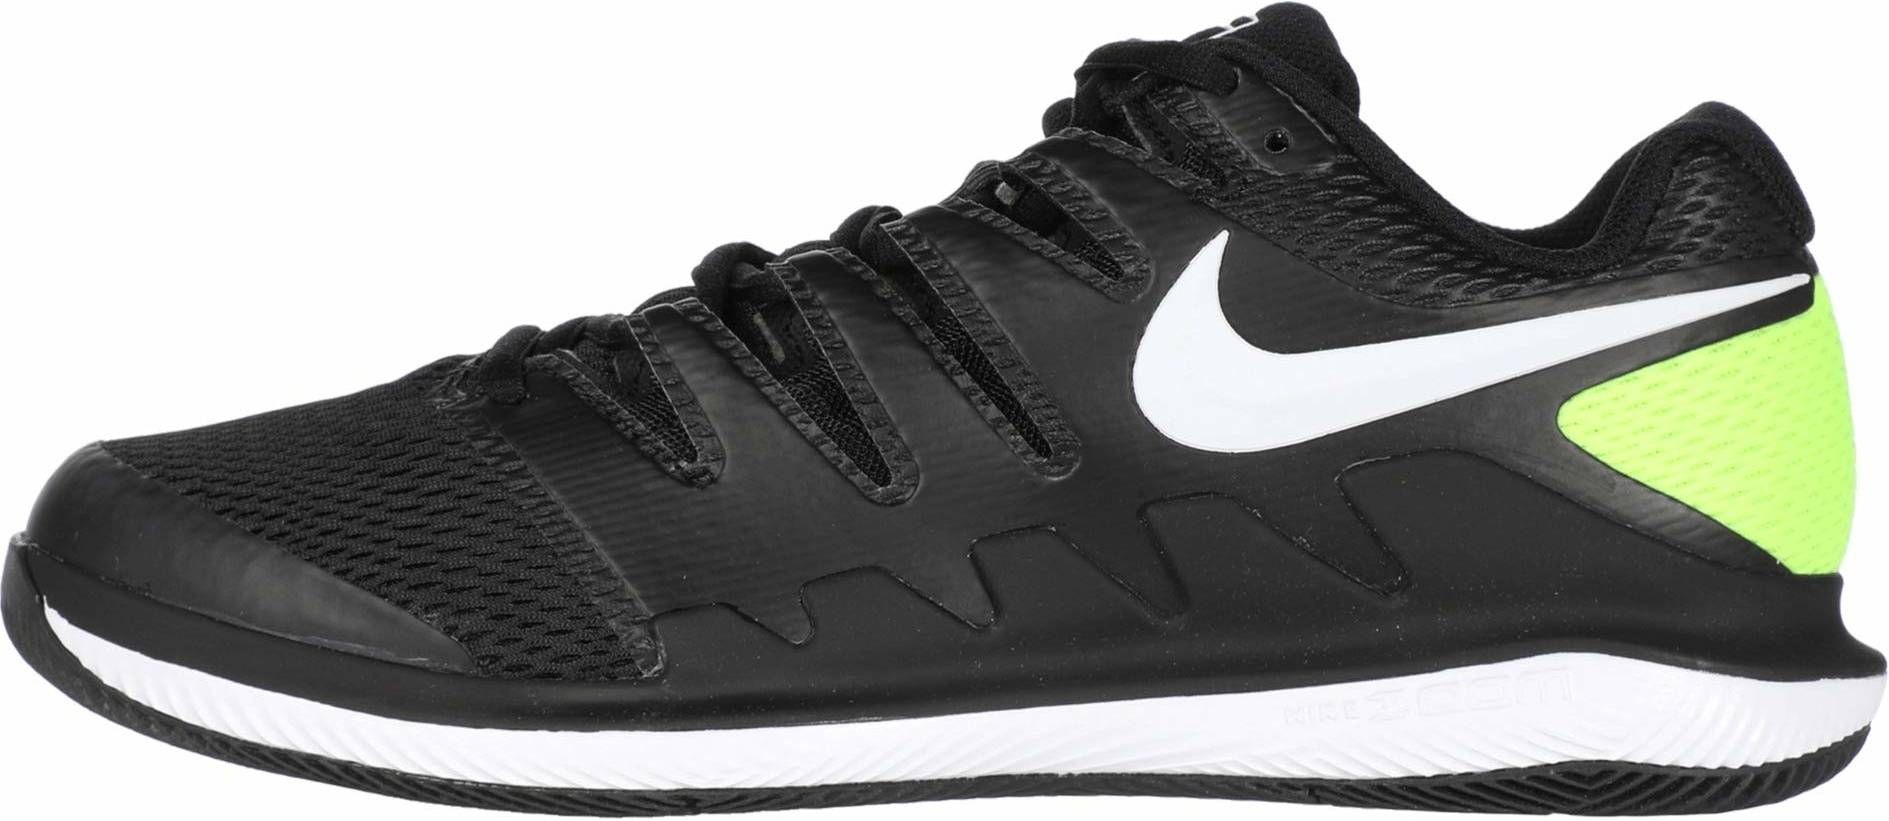 Nikecourt Air Zoom Vapor X Deals 100 Facts Reviews 2021 Runrepeat